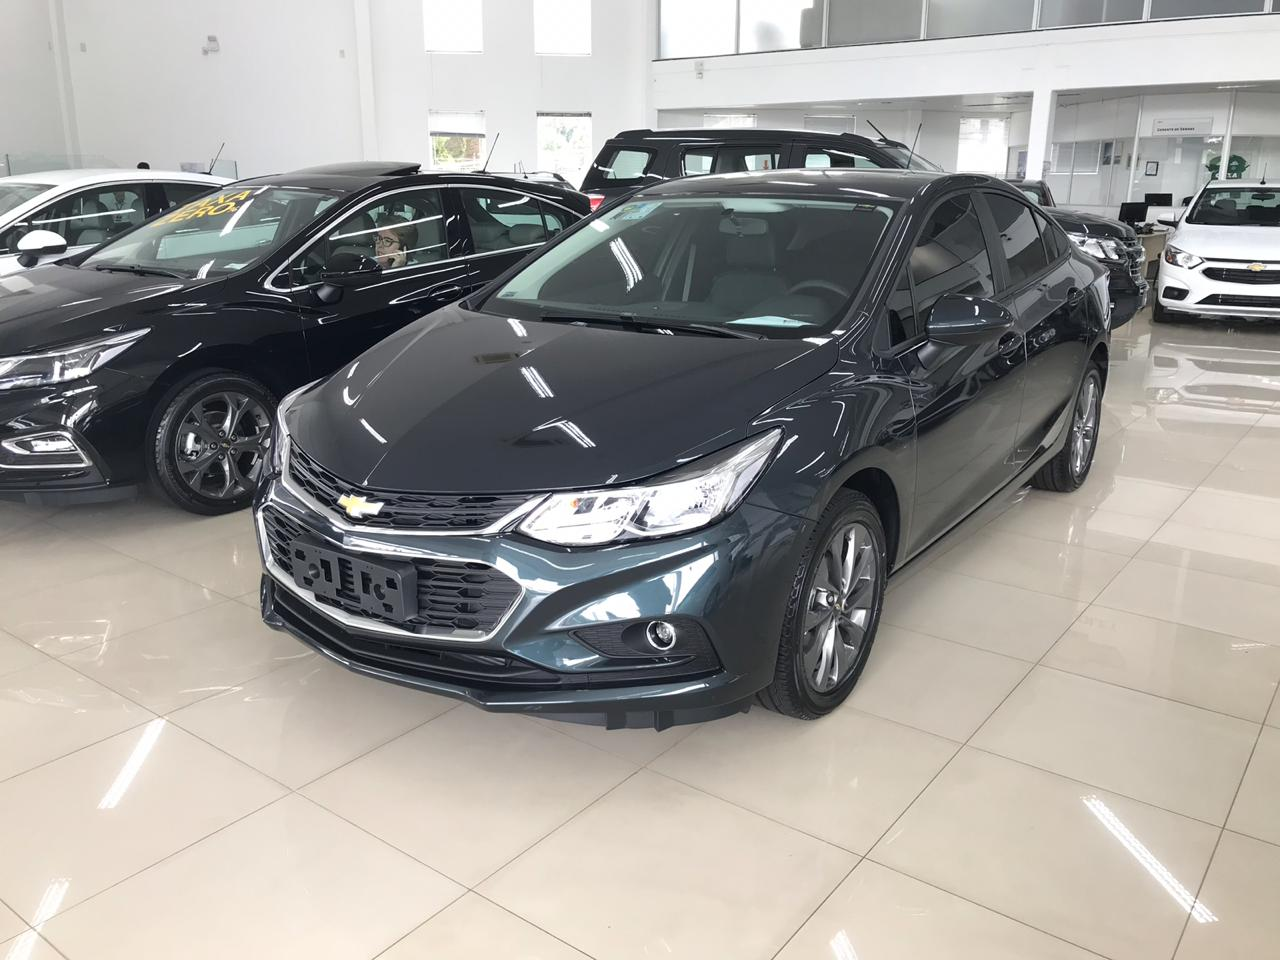 Chevrolet I/CHEV CRUZE LT NB AT ZERO KM 1.4 2018